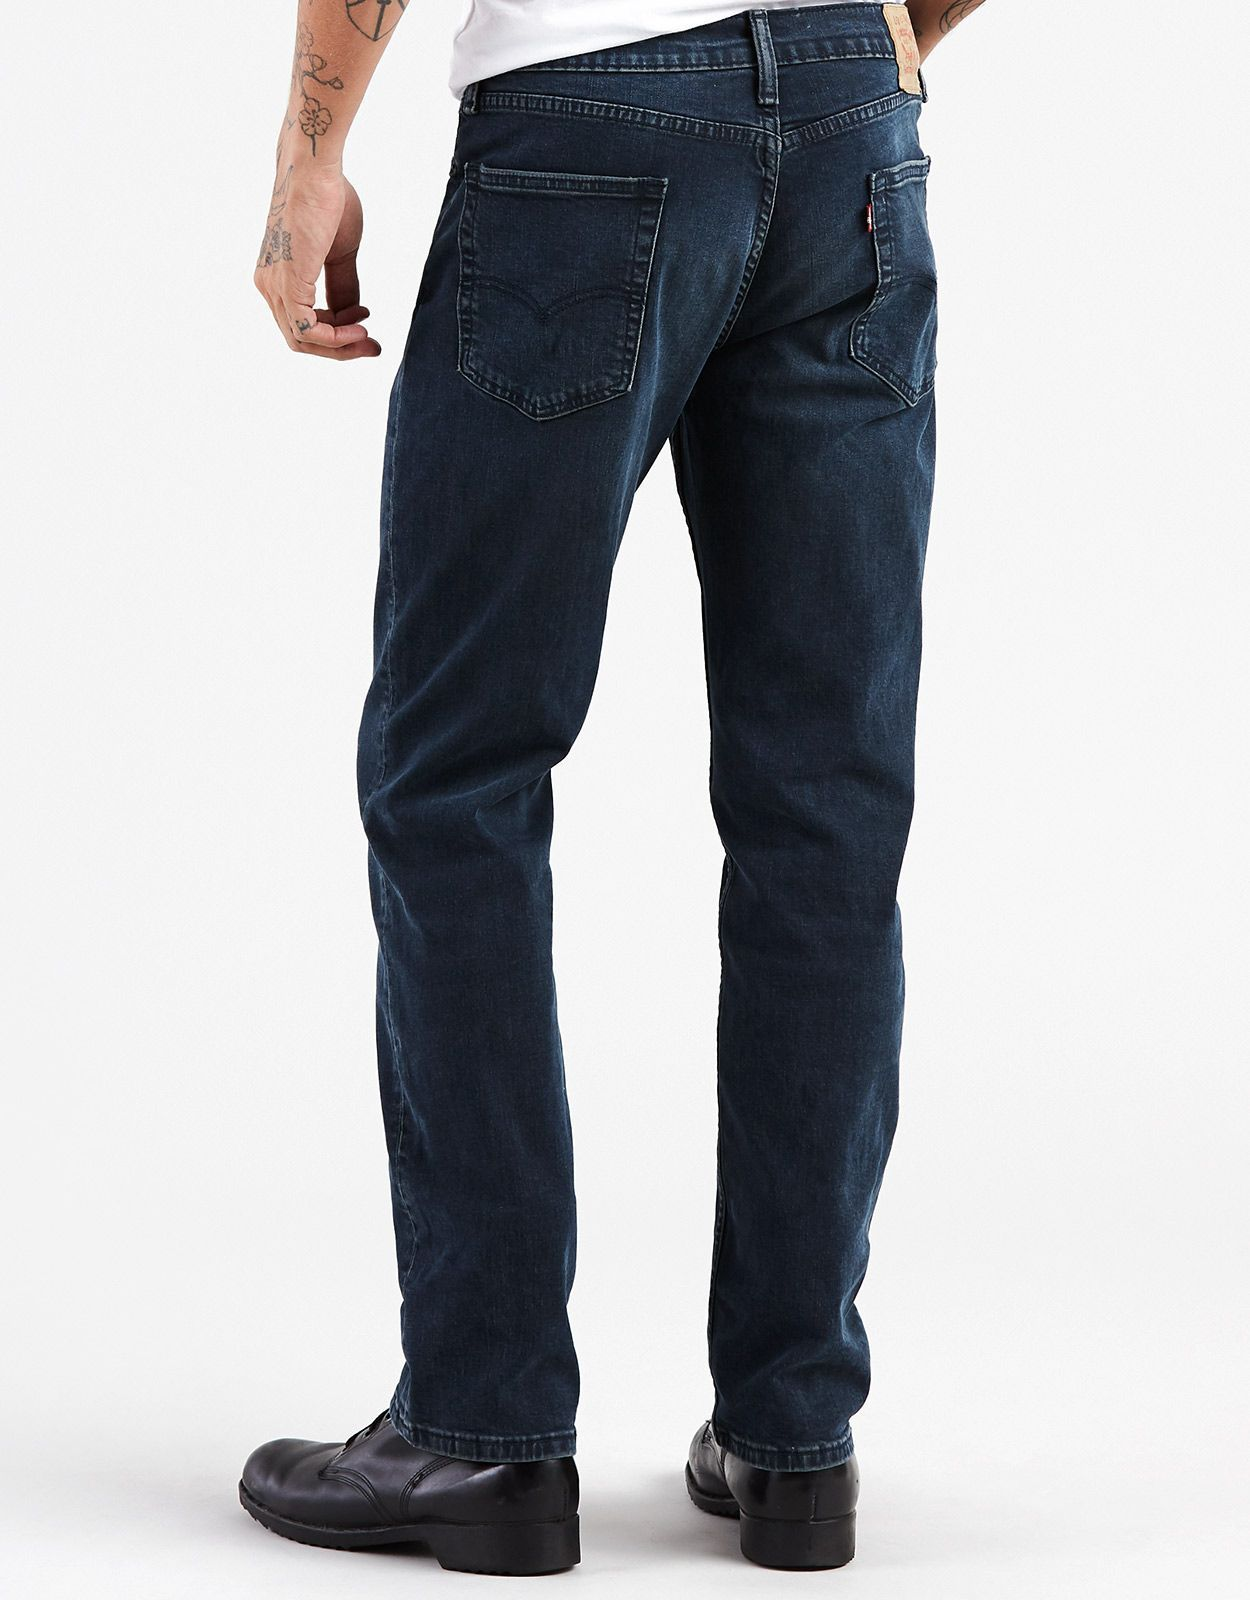 Levi's Men's 514 Straight Stretch Low Rise Regular Fit Straight Leg Jeans - Ship Yard (Closeout)